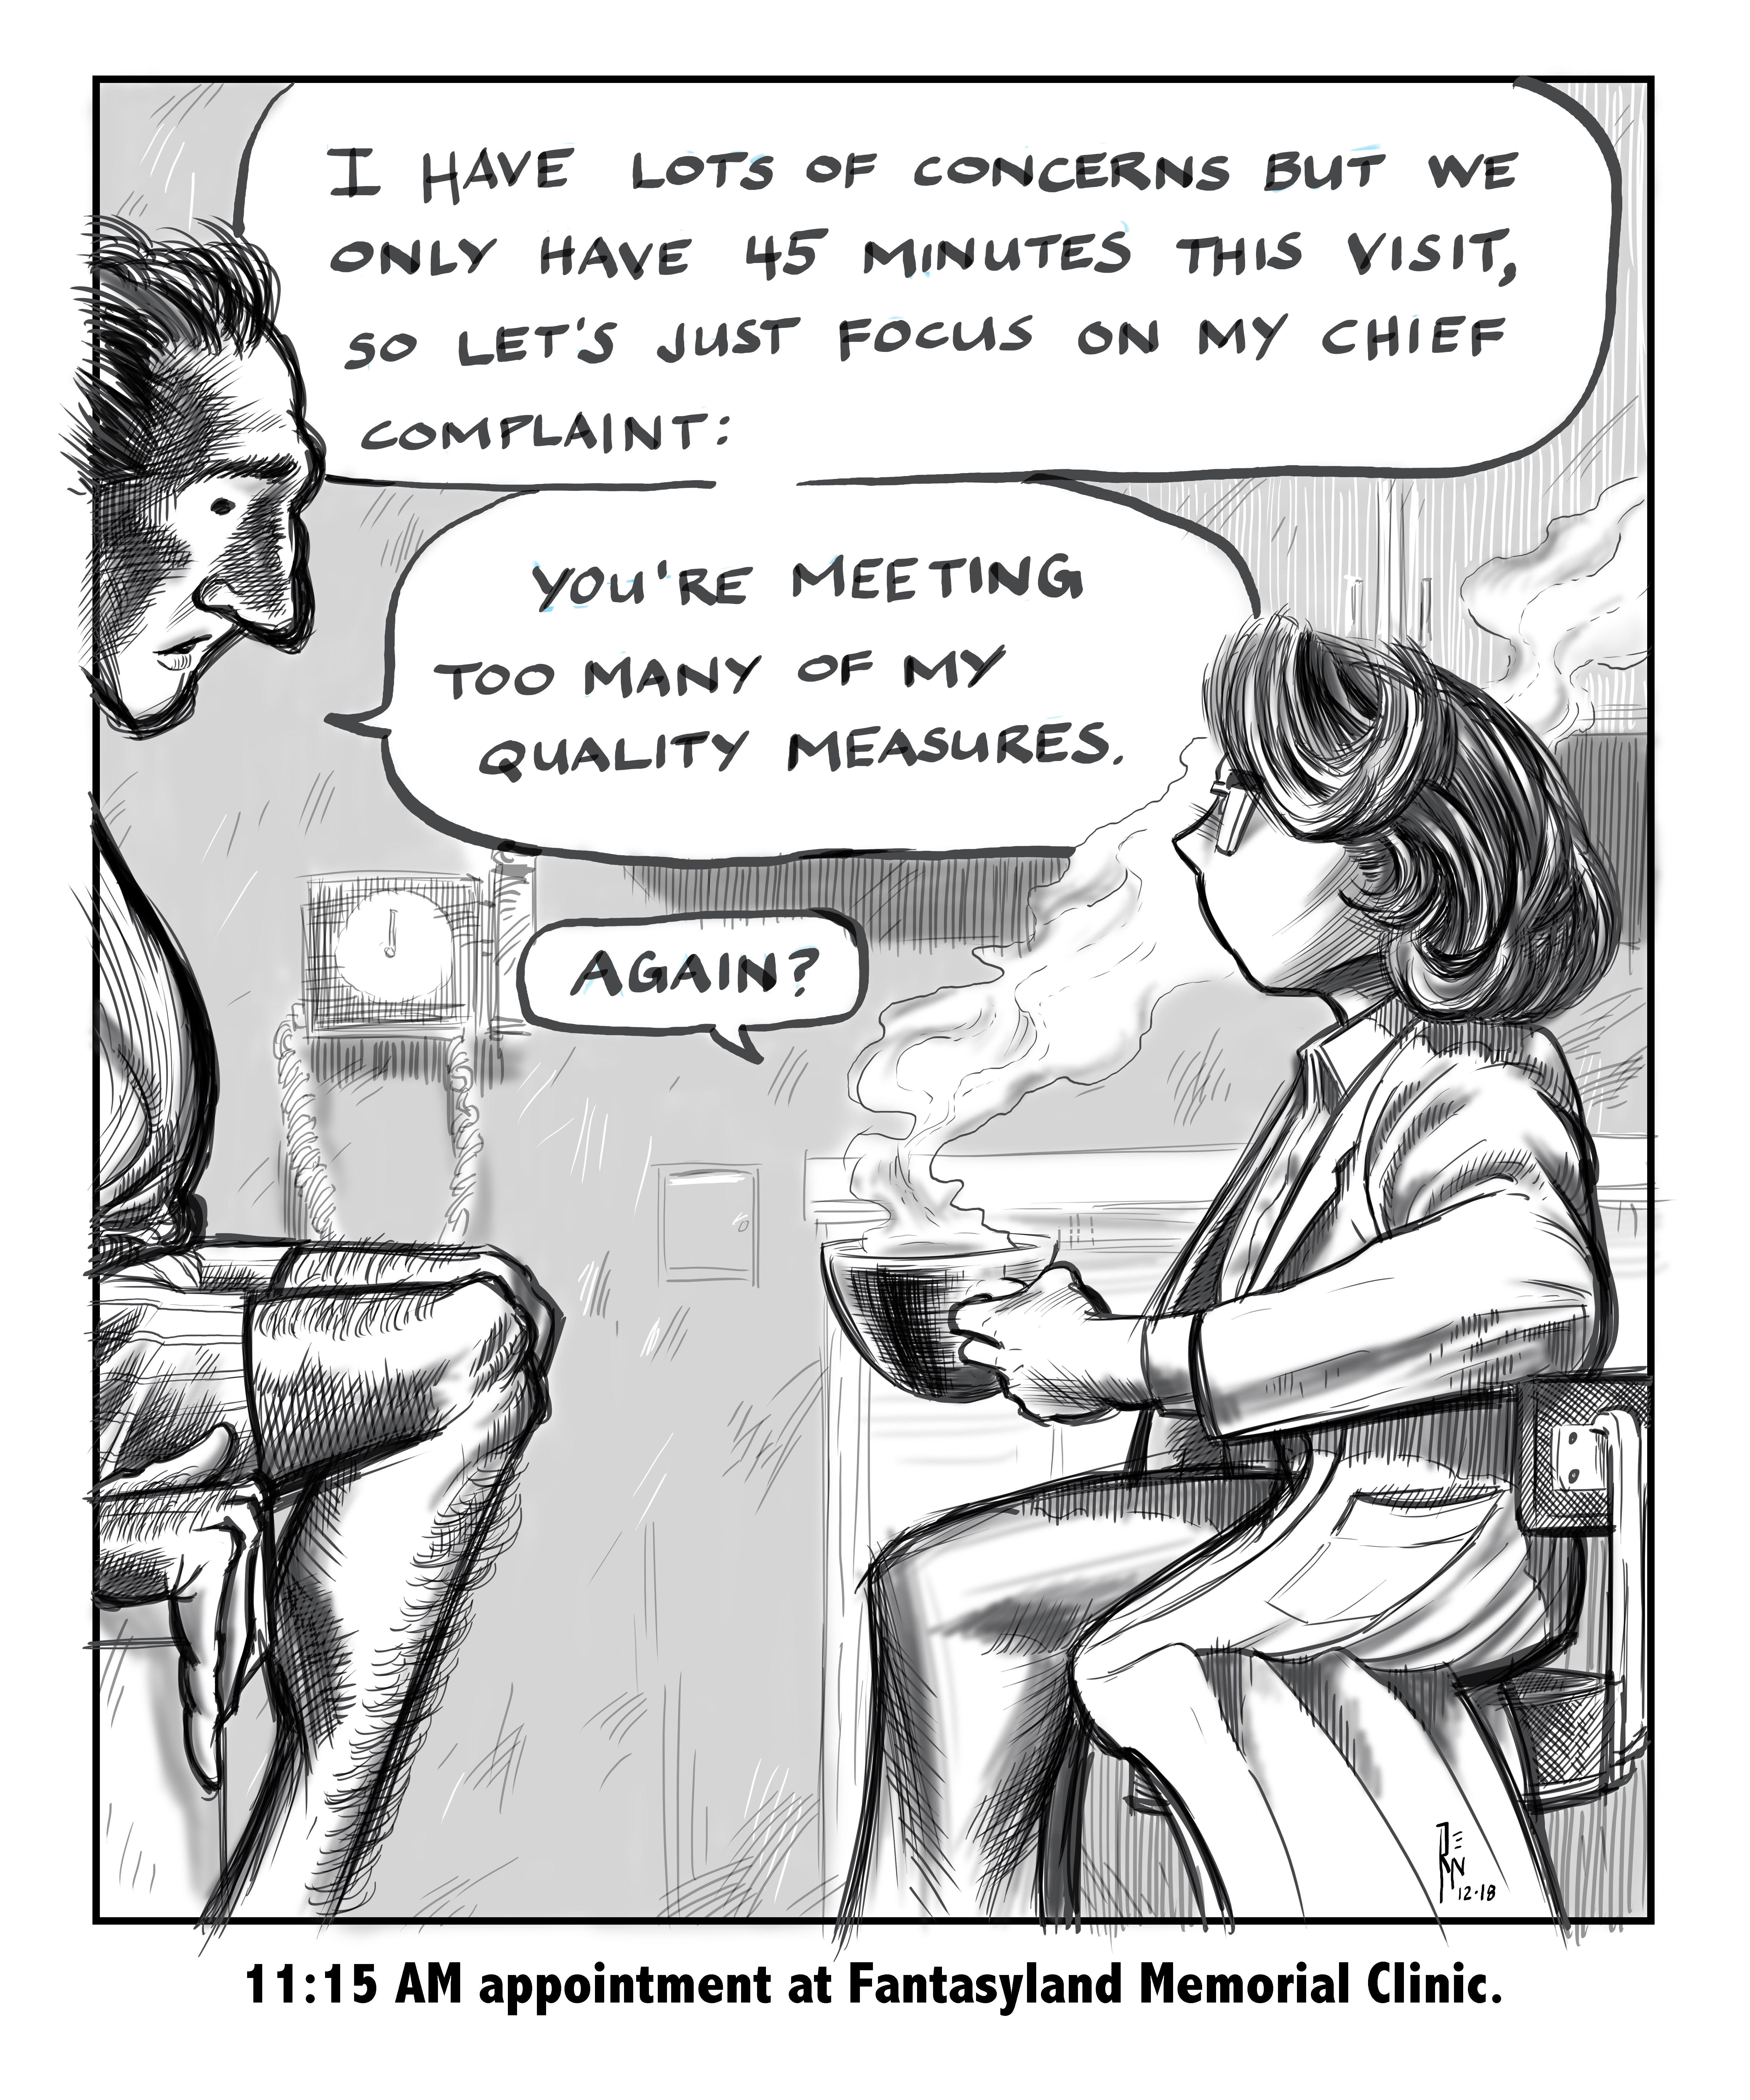 physician quality measures, clinical quality measures, medical humor